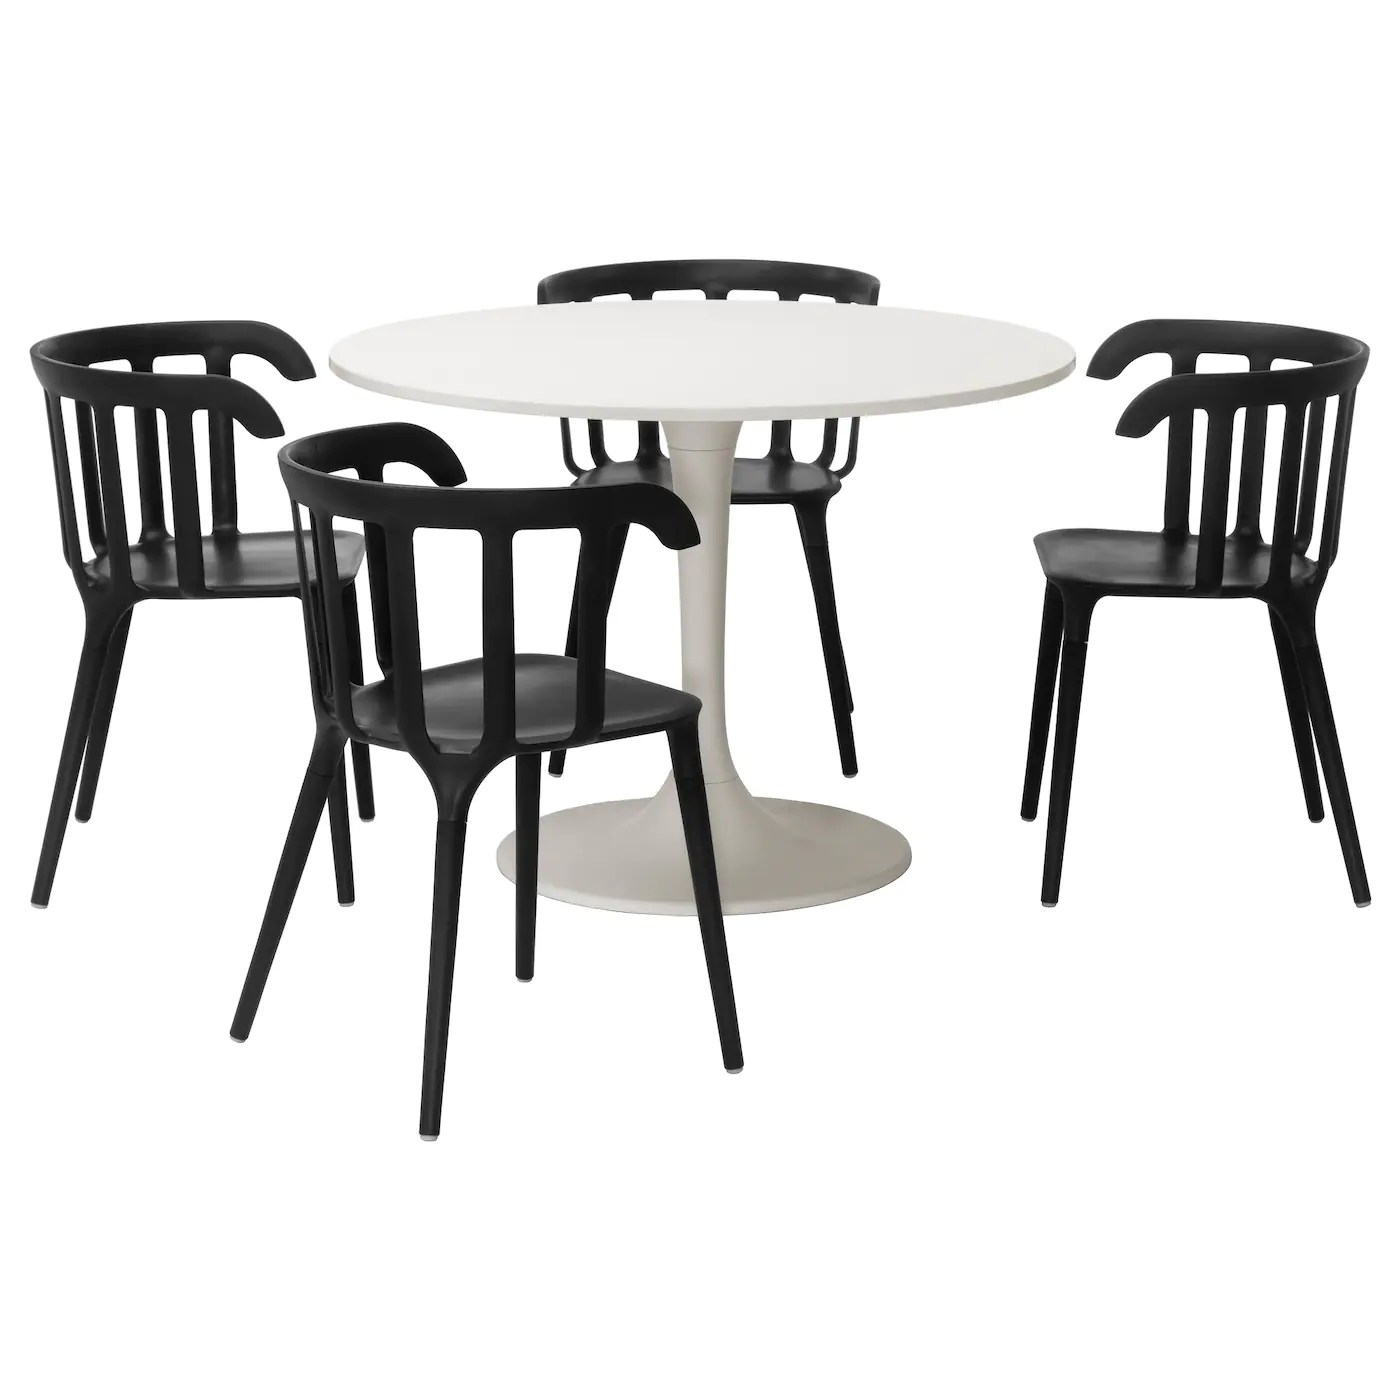 ikea dining chair covers black and white kids hanging docksta ps 2012 table 4 chairs 105 cm